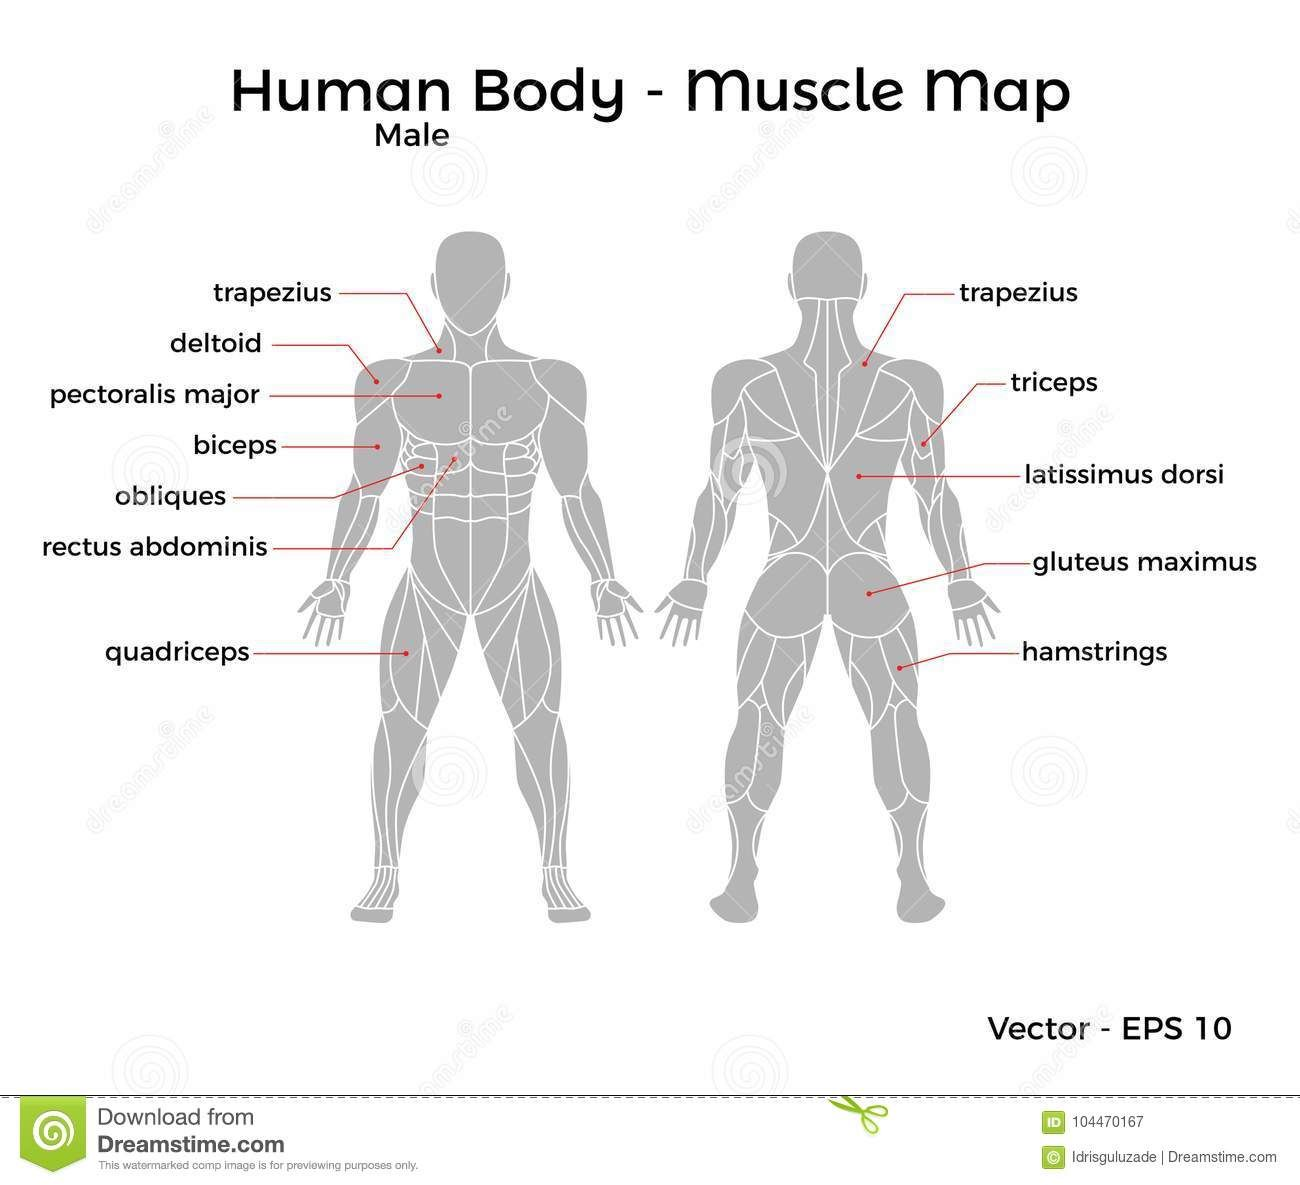 Photo About Male Human Body Muscle Map With Major Muscle